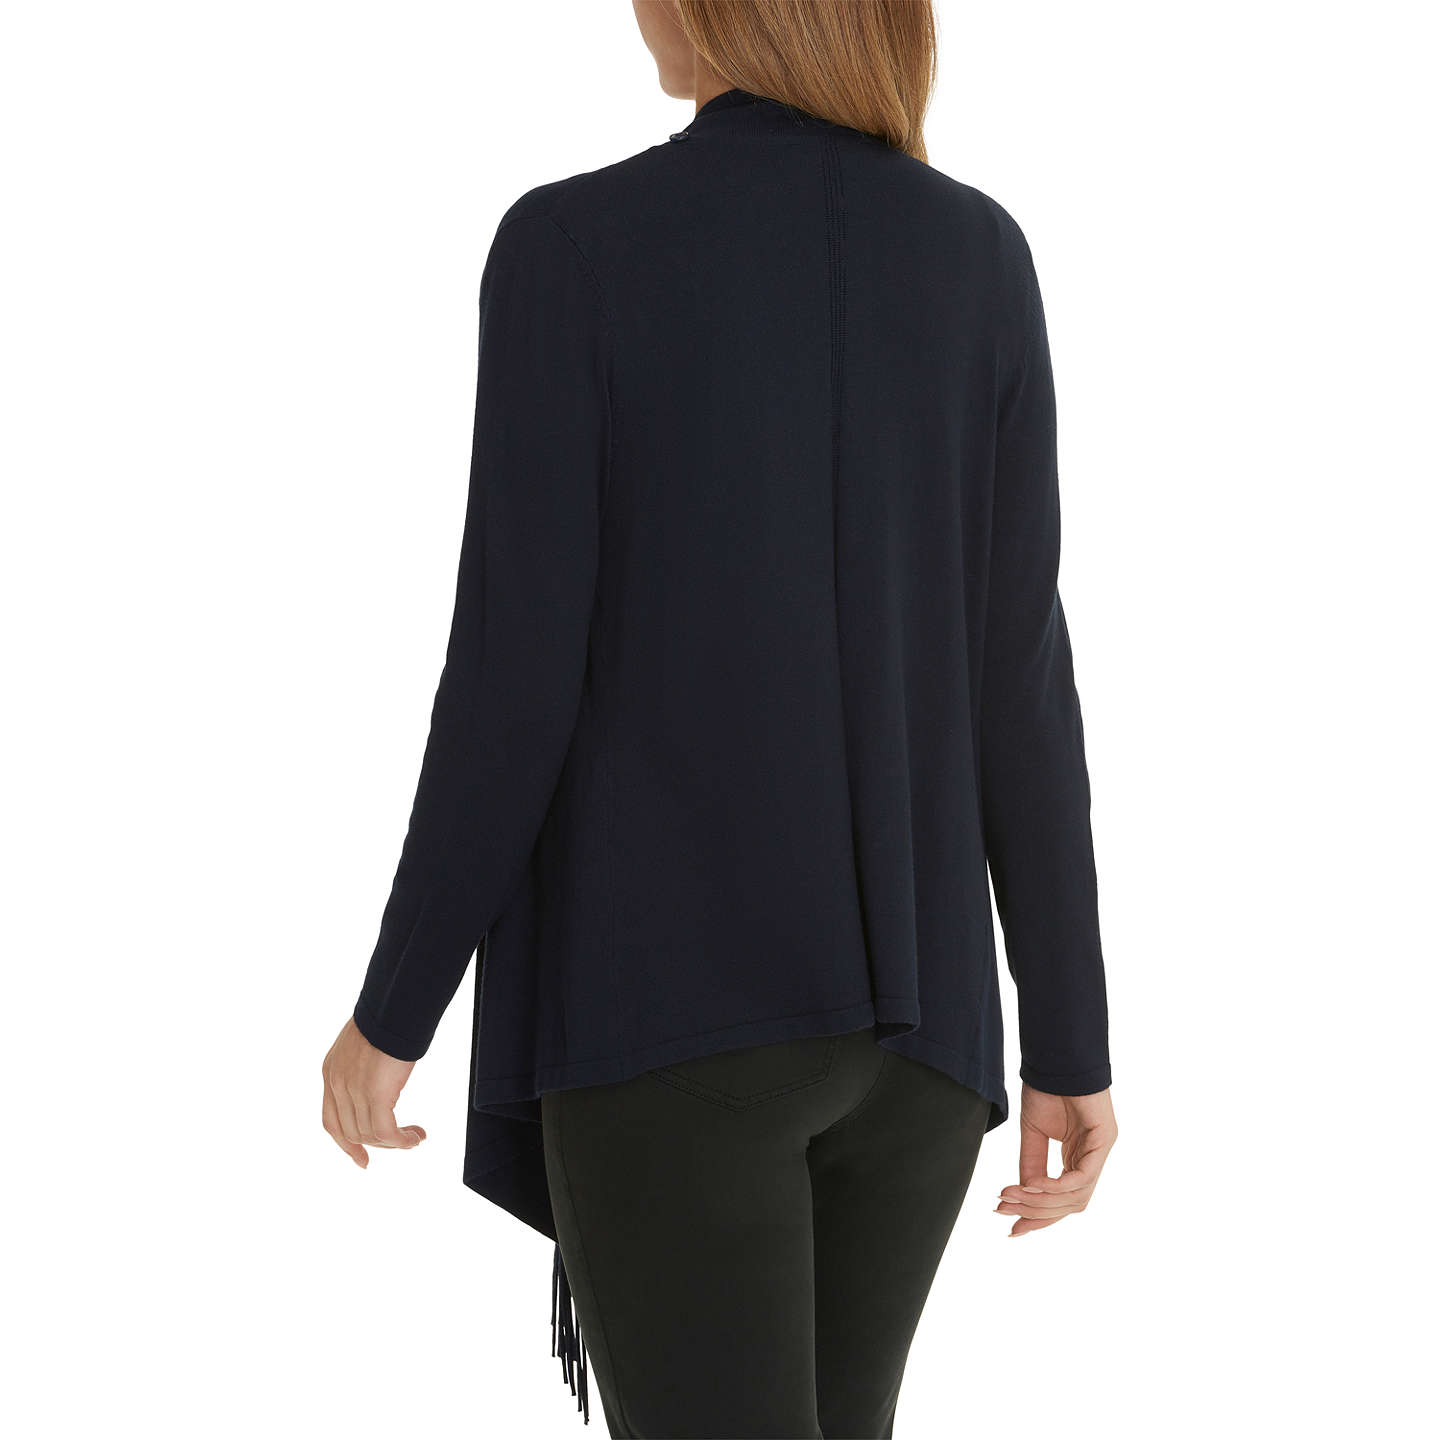 BuyBetty Barclay Tasselled Cardigan, Dark Sky, 10 Online at johnlewis.com